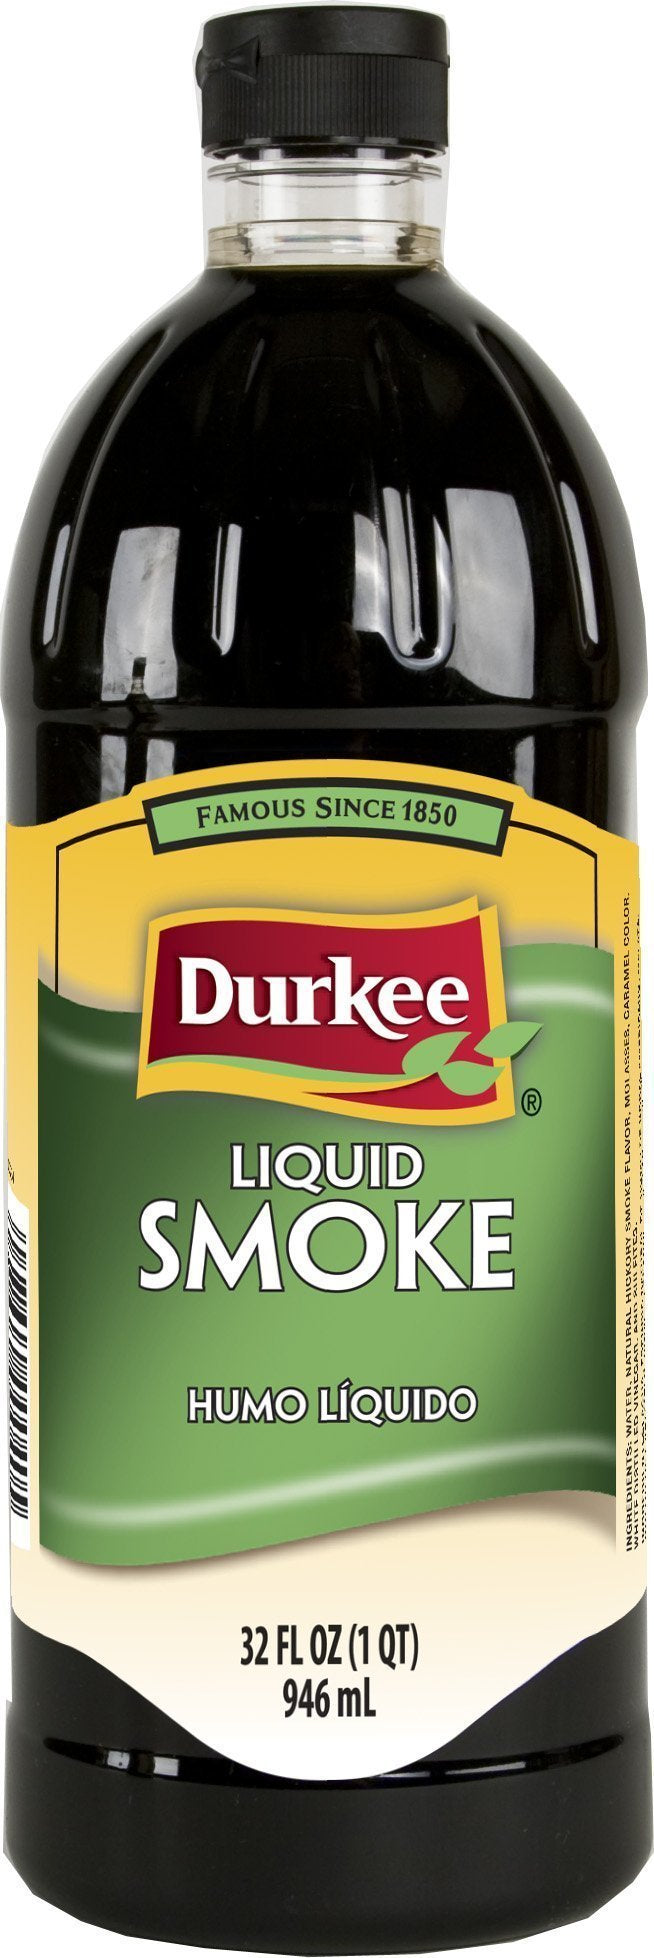 Liquid Smoke Hickory 946ml Bottle Durkee